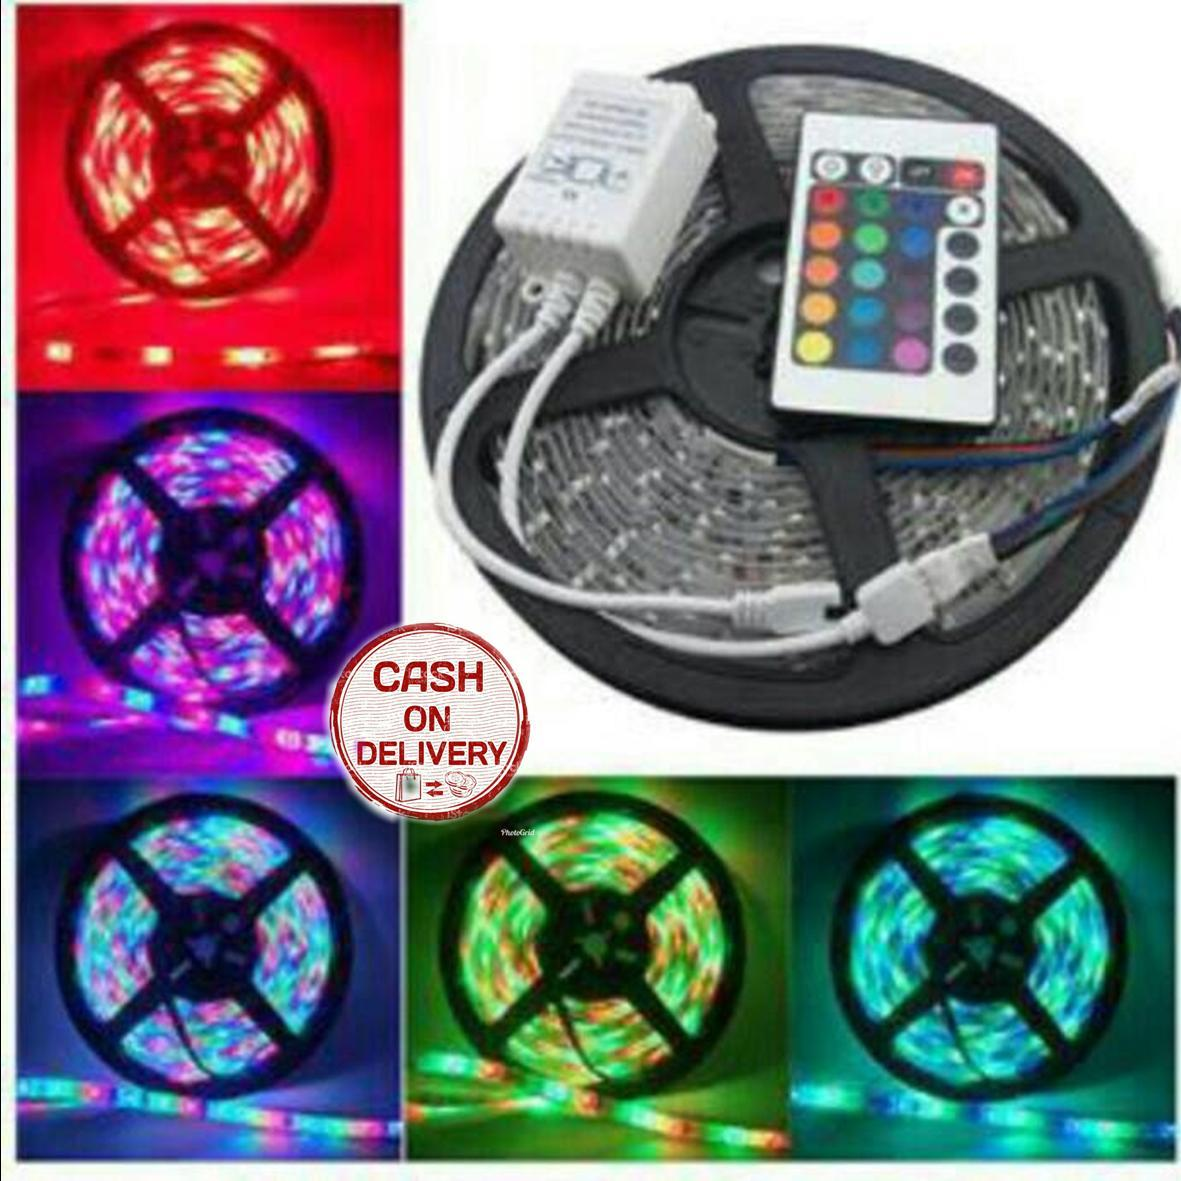 Daftar Harga Lampu Warna Warni Termurah 2018 Cekharga Disco Sorot Panggung 54 Parled Sien Collection Led Strip Lamp Rgb 3528 300 Remote Hias Dekorasi Interior Portable